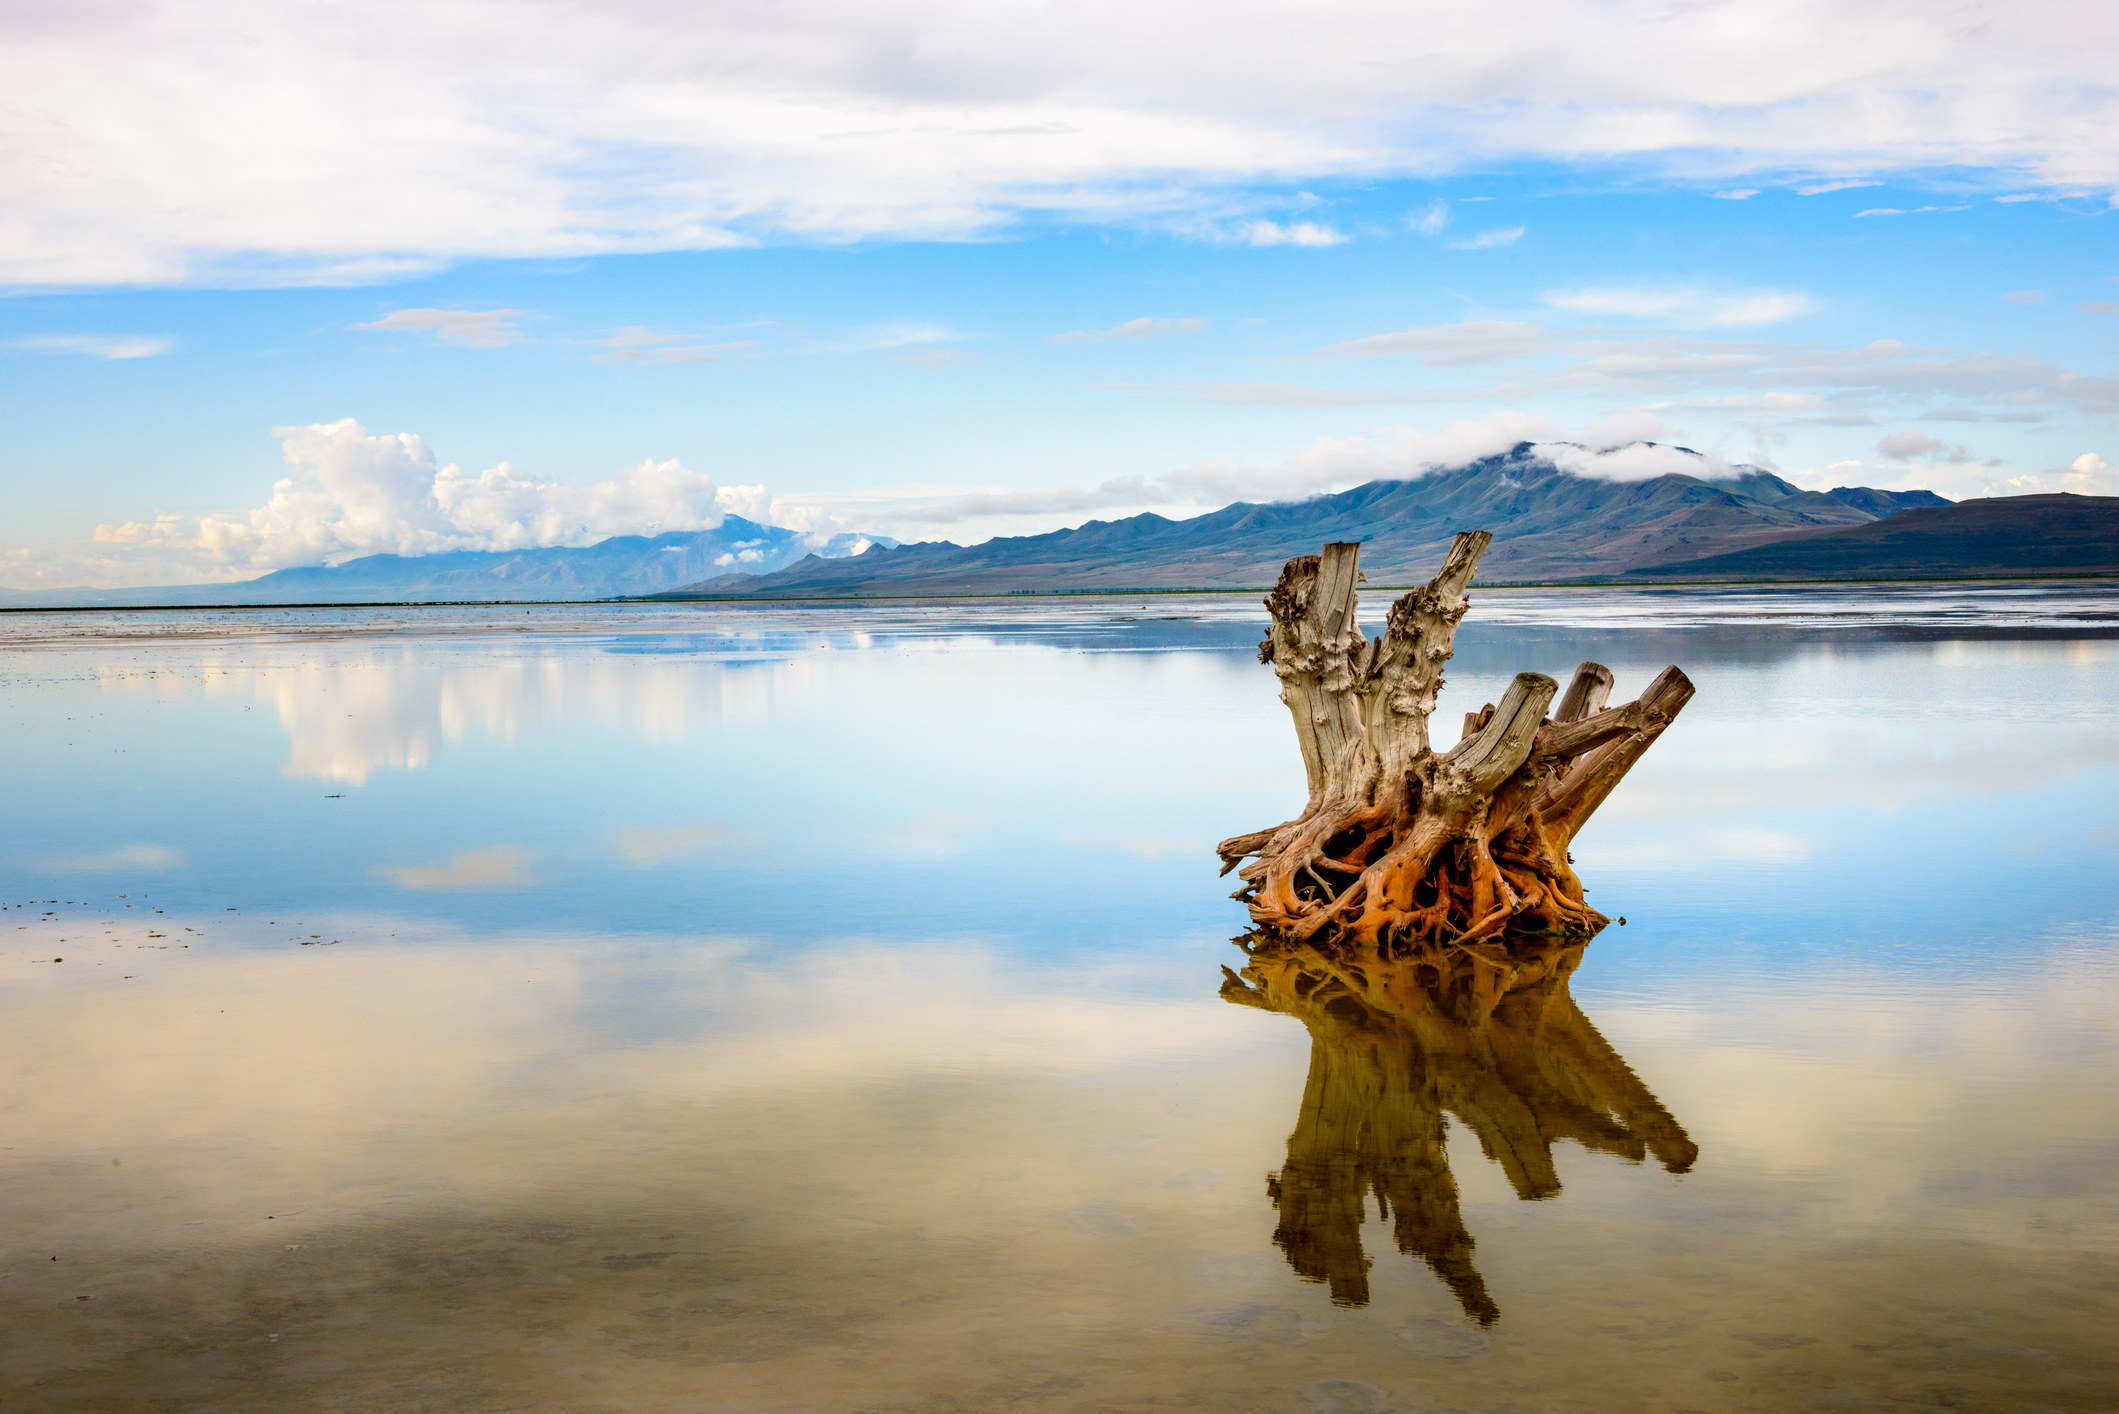 shockingly reflective water in a big lake, an old tree root in the foreground with mountains in the background